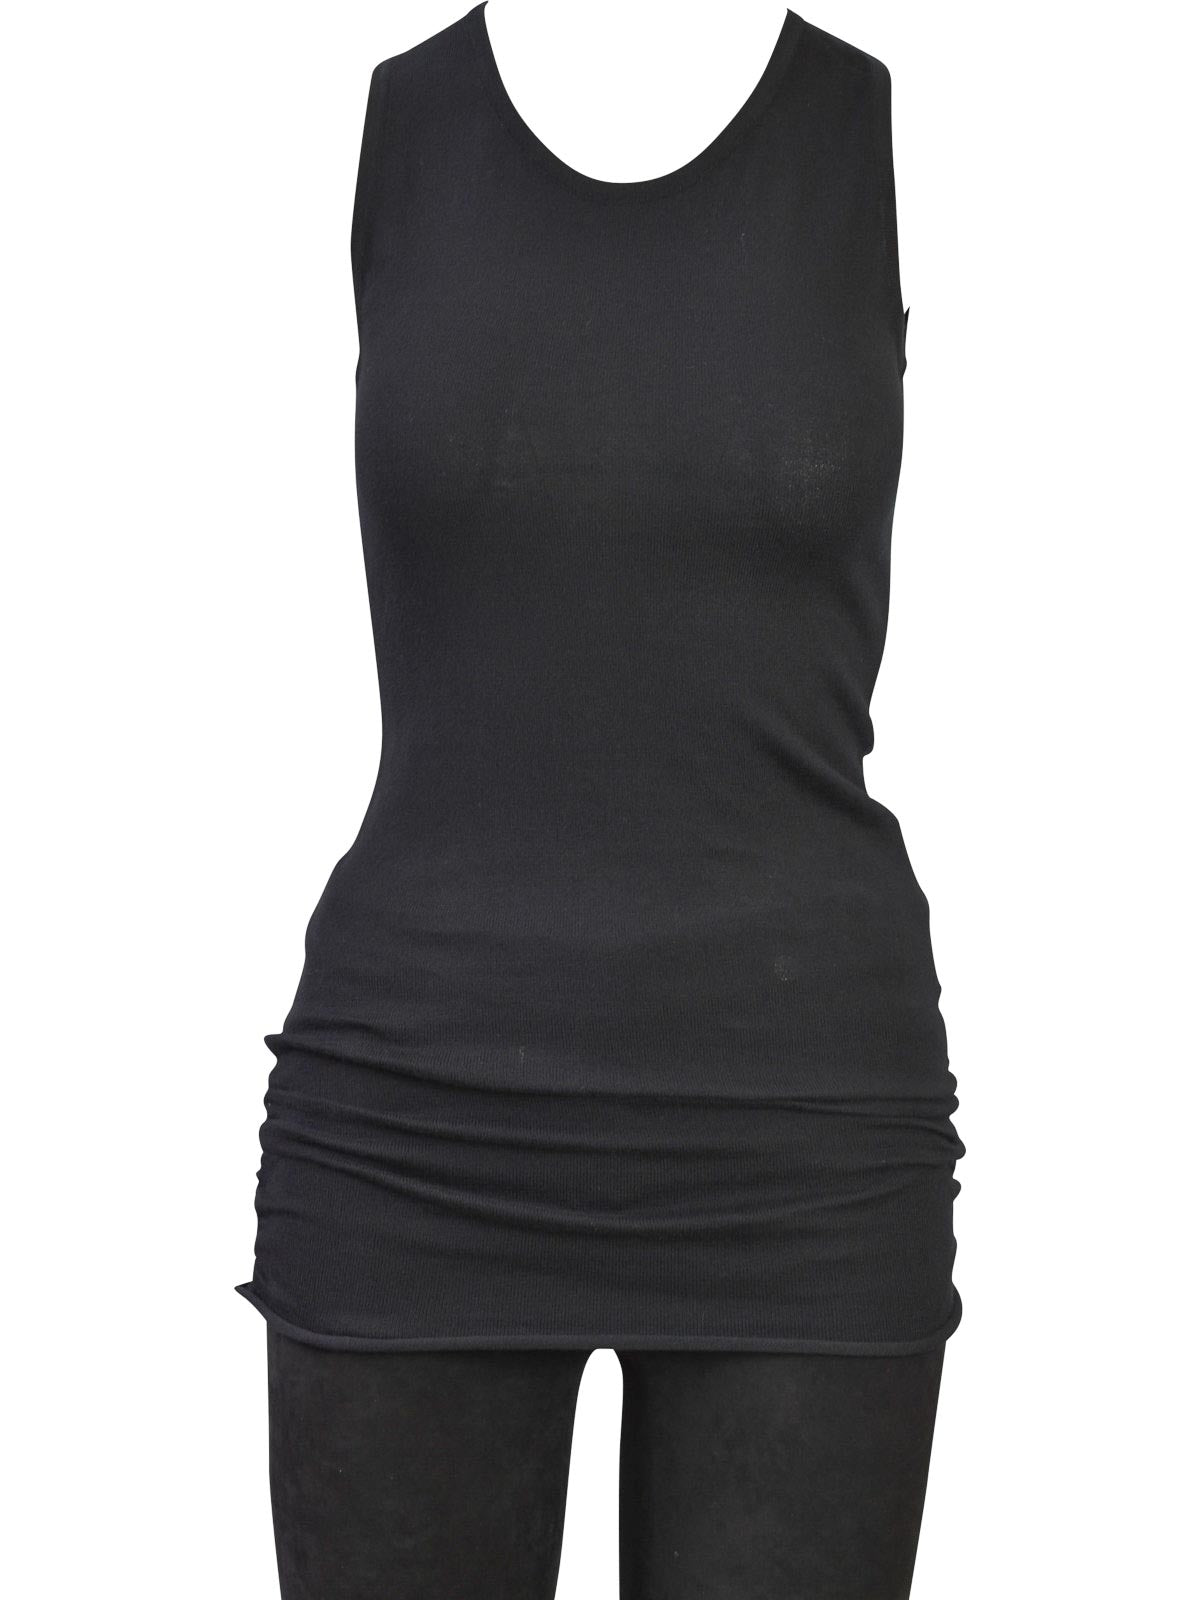 Planet by Lauren G Luxury Tank Top, Black